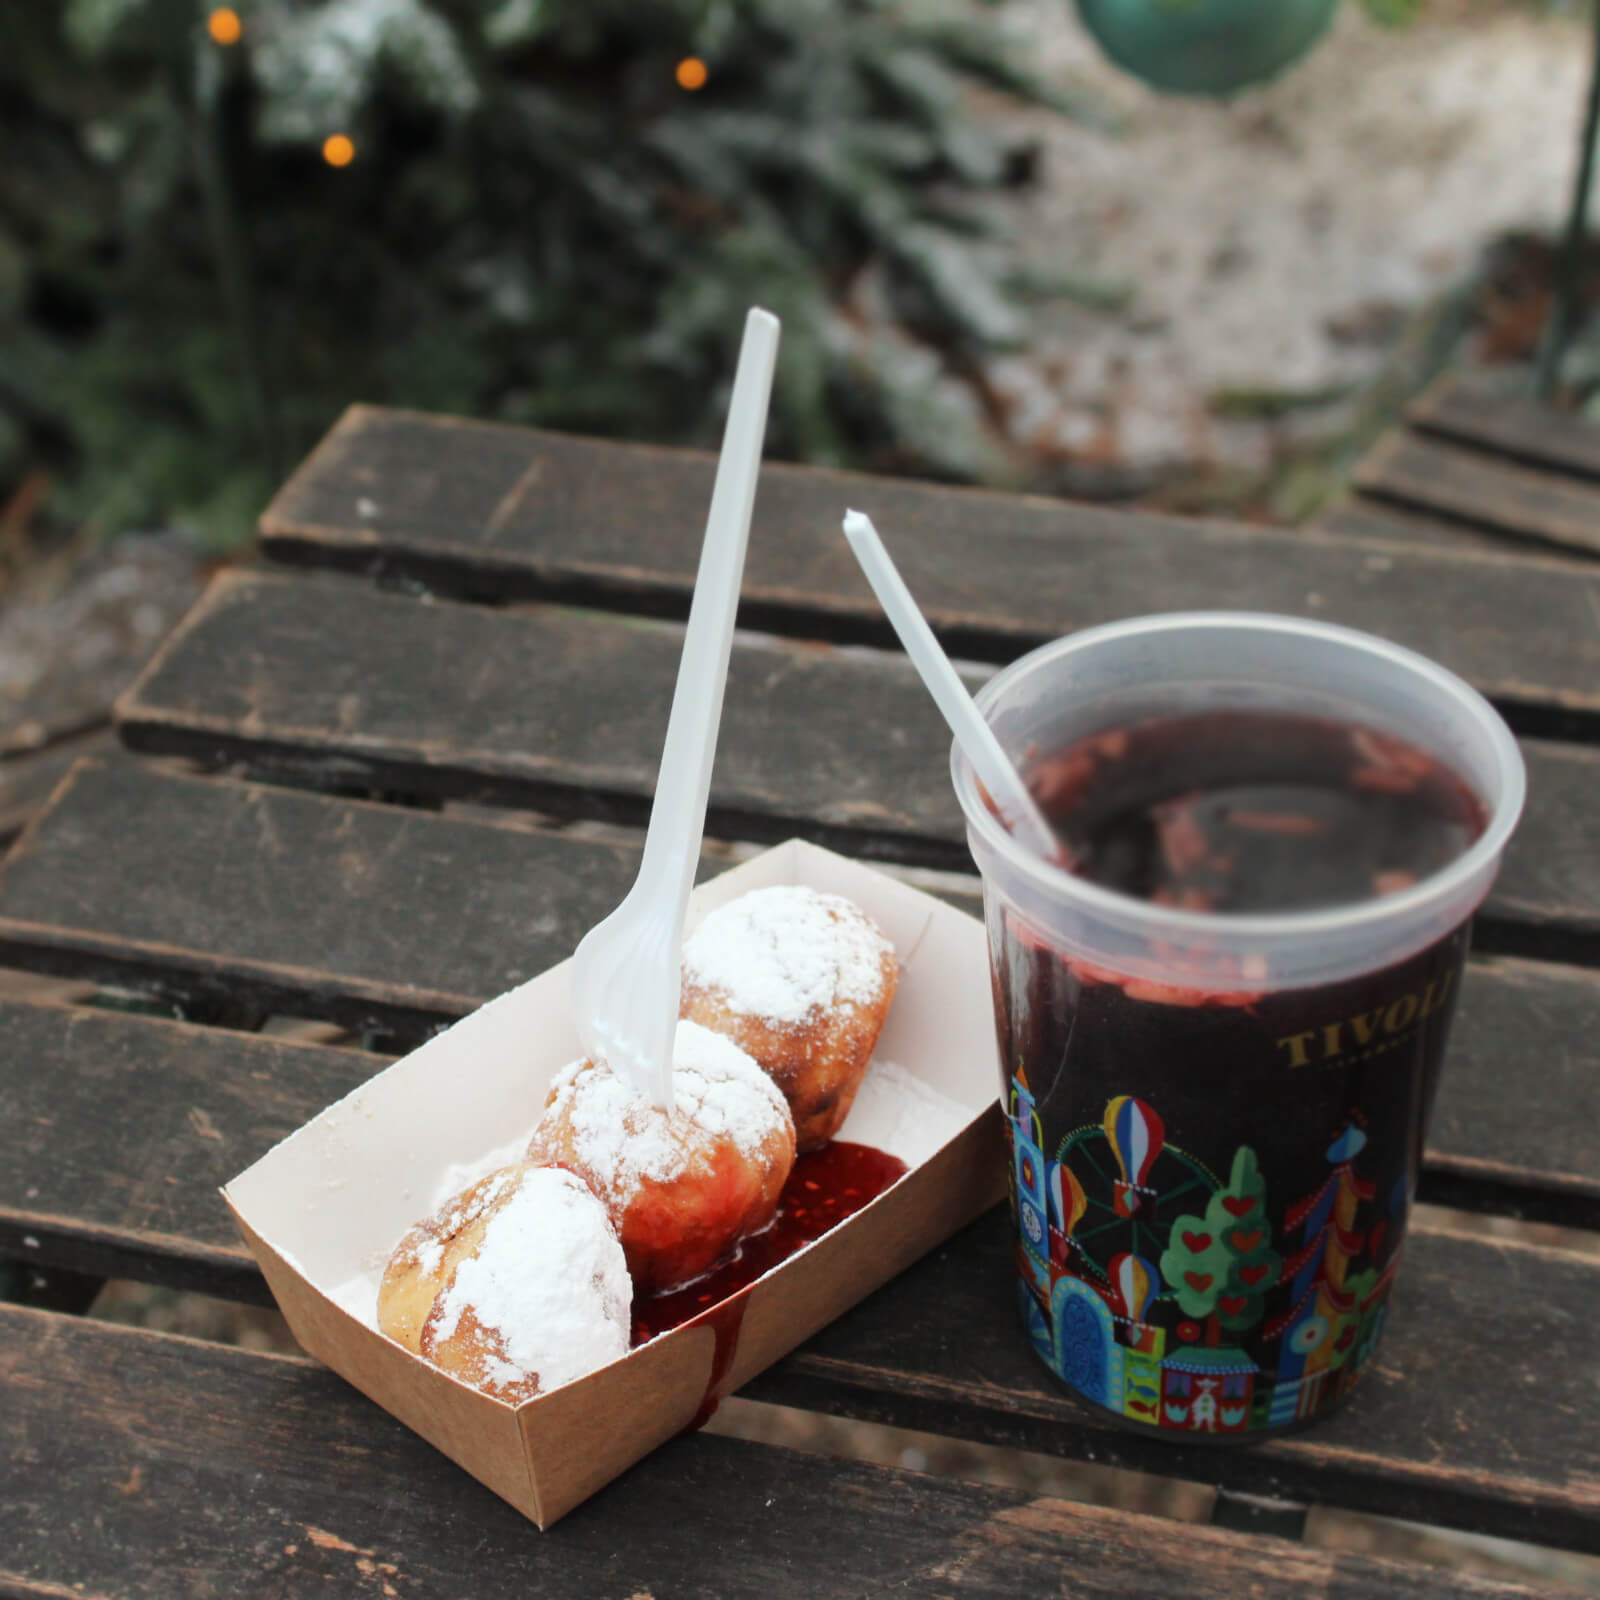 Aebleskiver are little balls of pancake deliciousness served with jam. One of our favorite Copenhagen Christmas Market food finds!